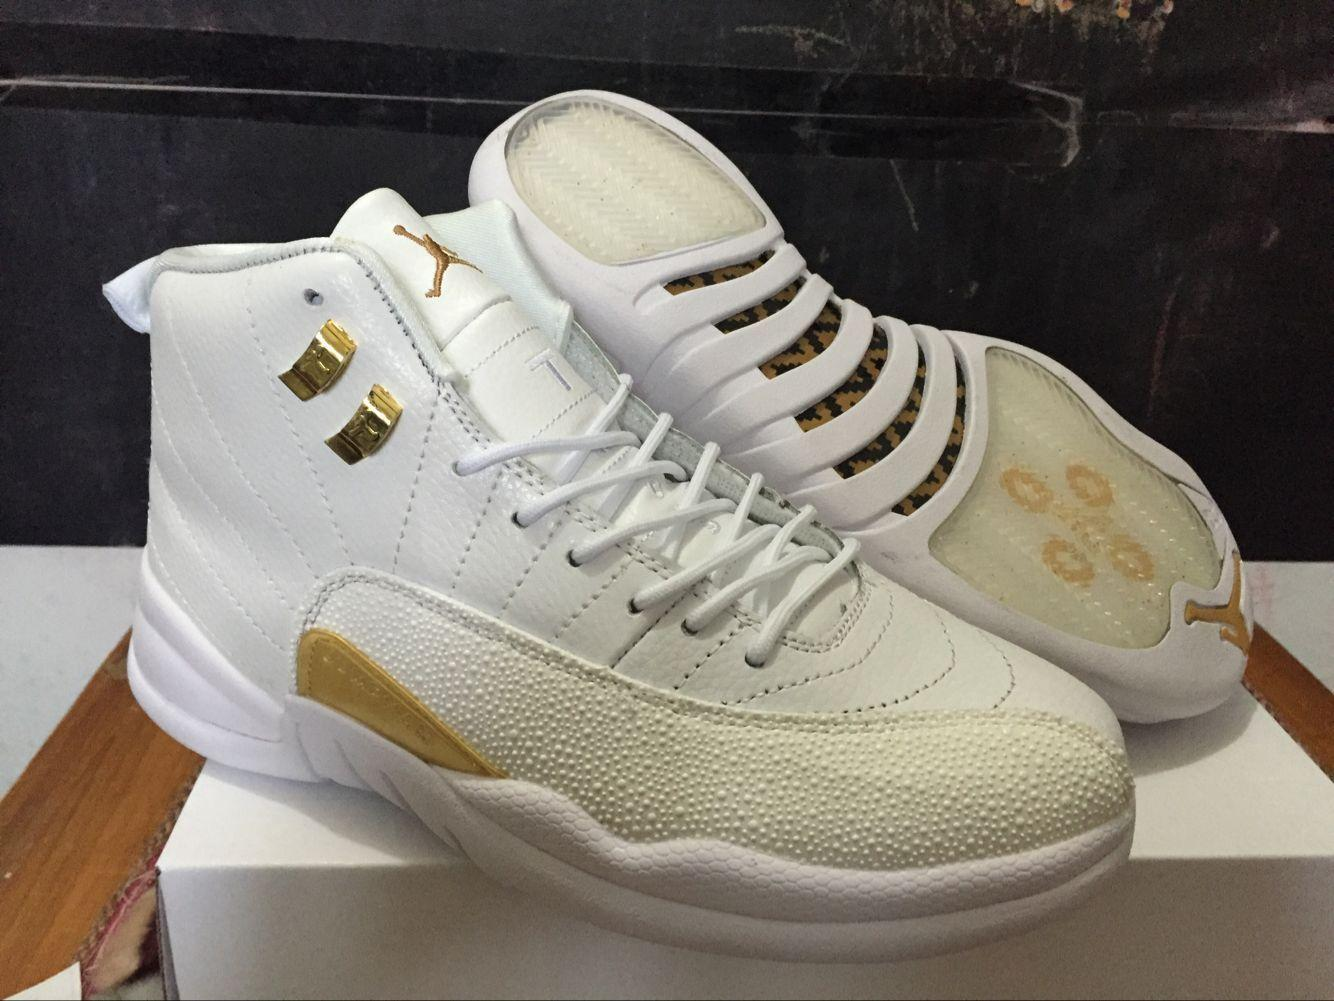 Original 2016 Nike Air Jordan 12 XII Retro OVO AJ12 Golden White Basketball Shoe for Men